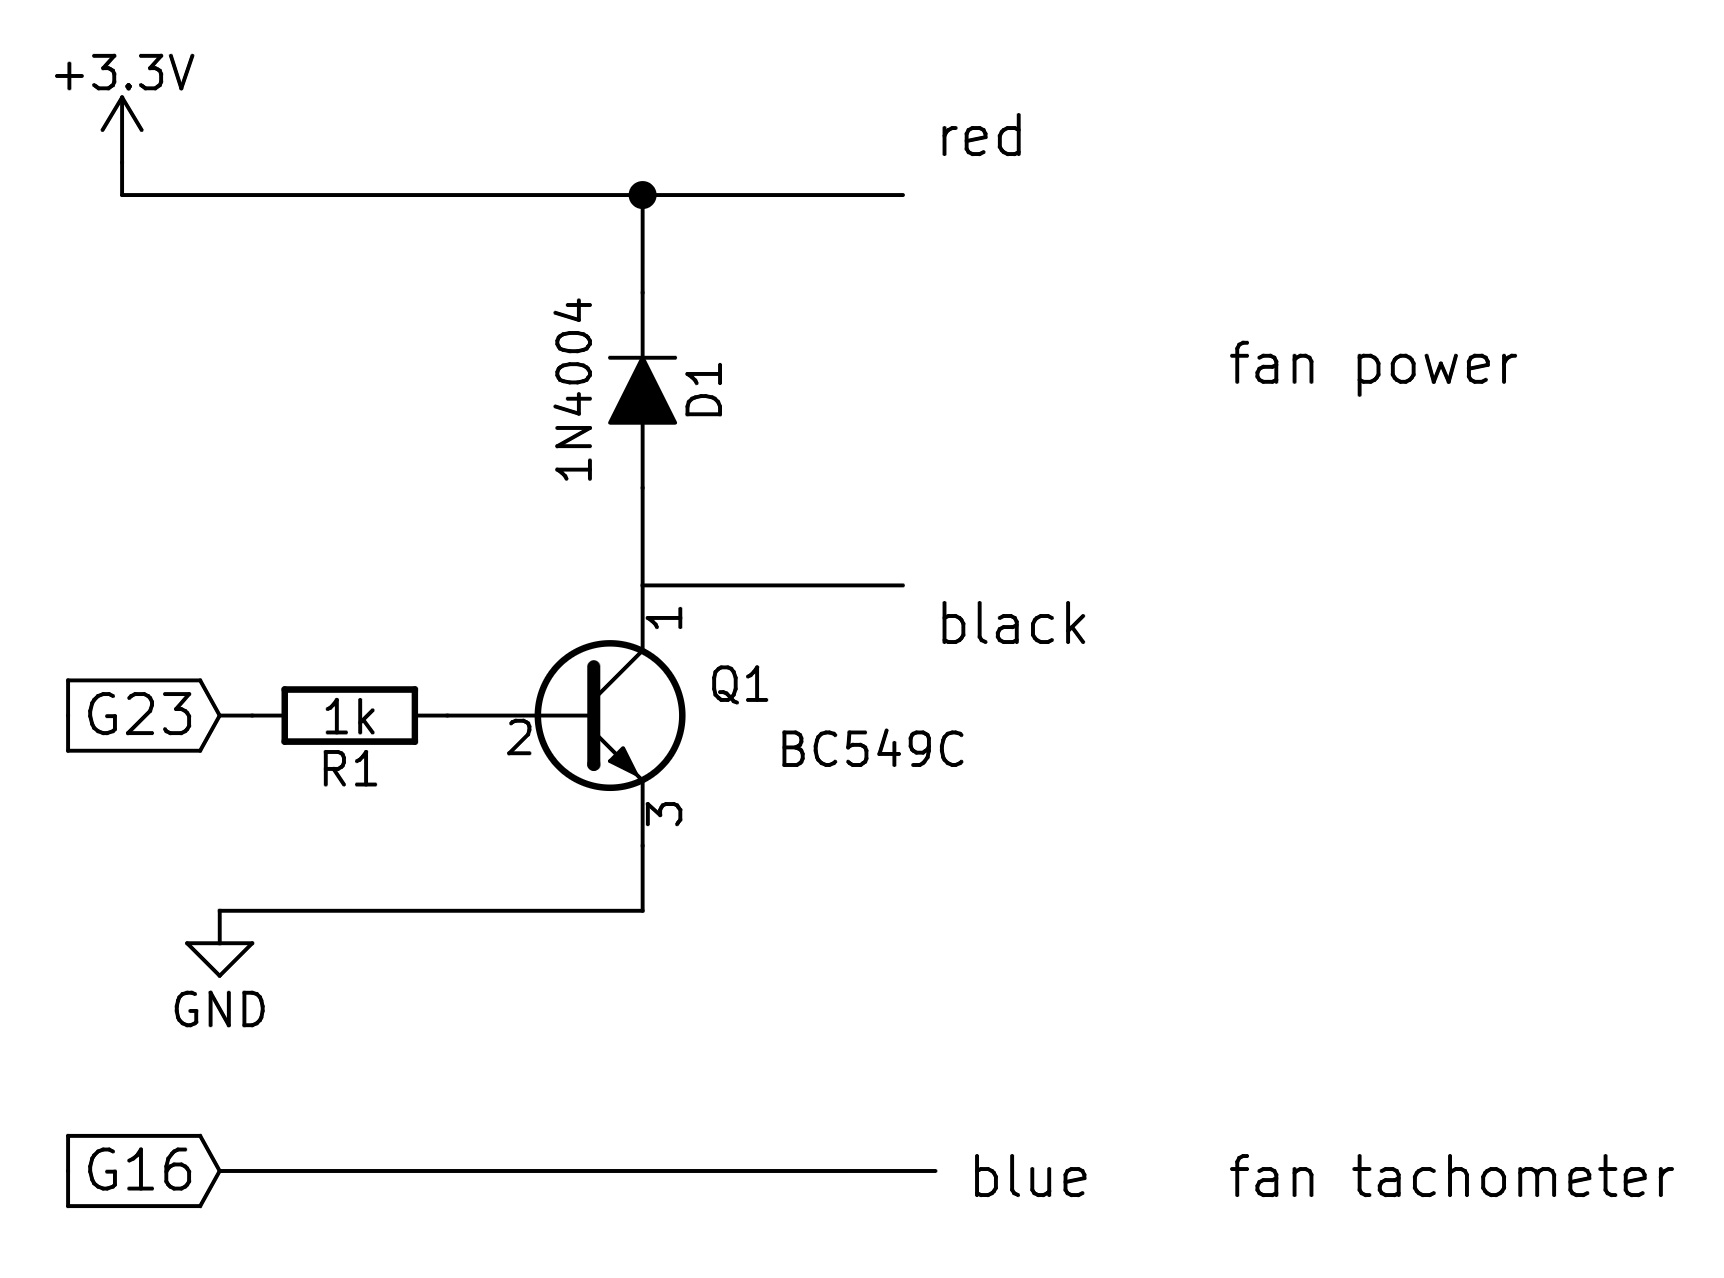 wiring 3w pwm fan wire diagram diagrams for wiring bathroom fan and lights  at nearapp.co